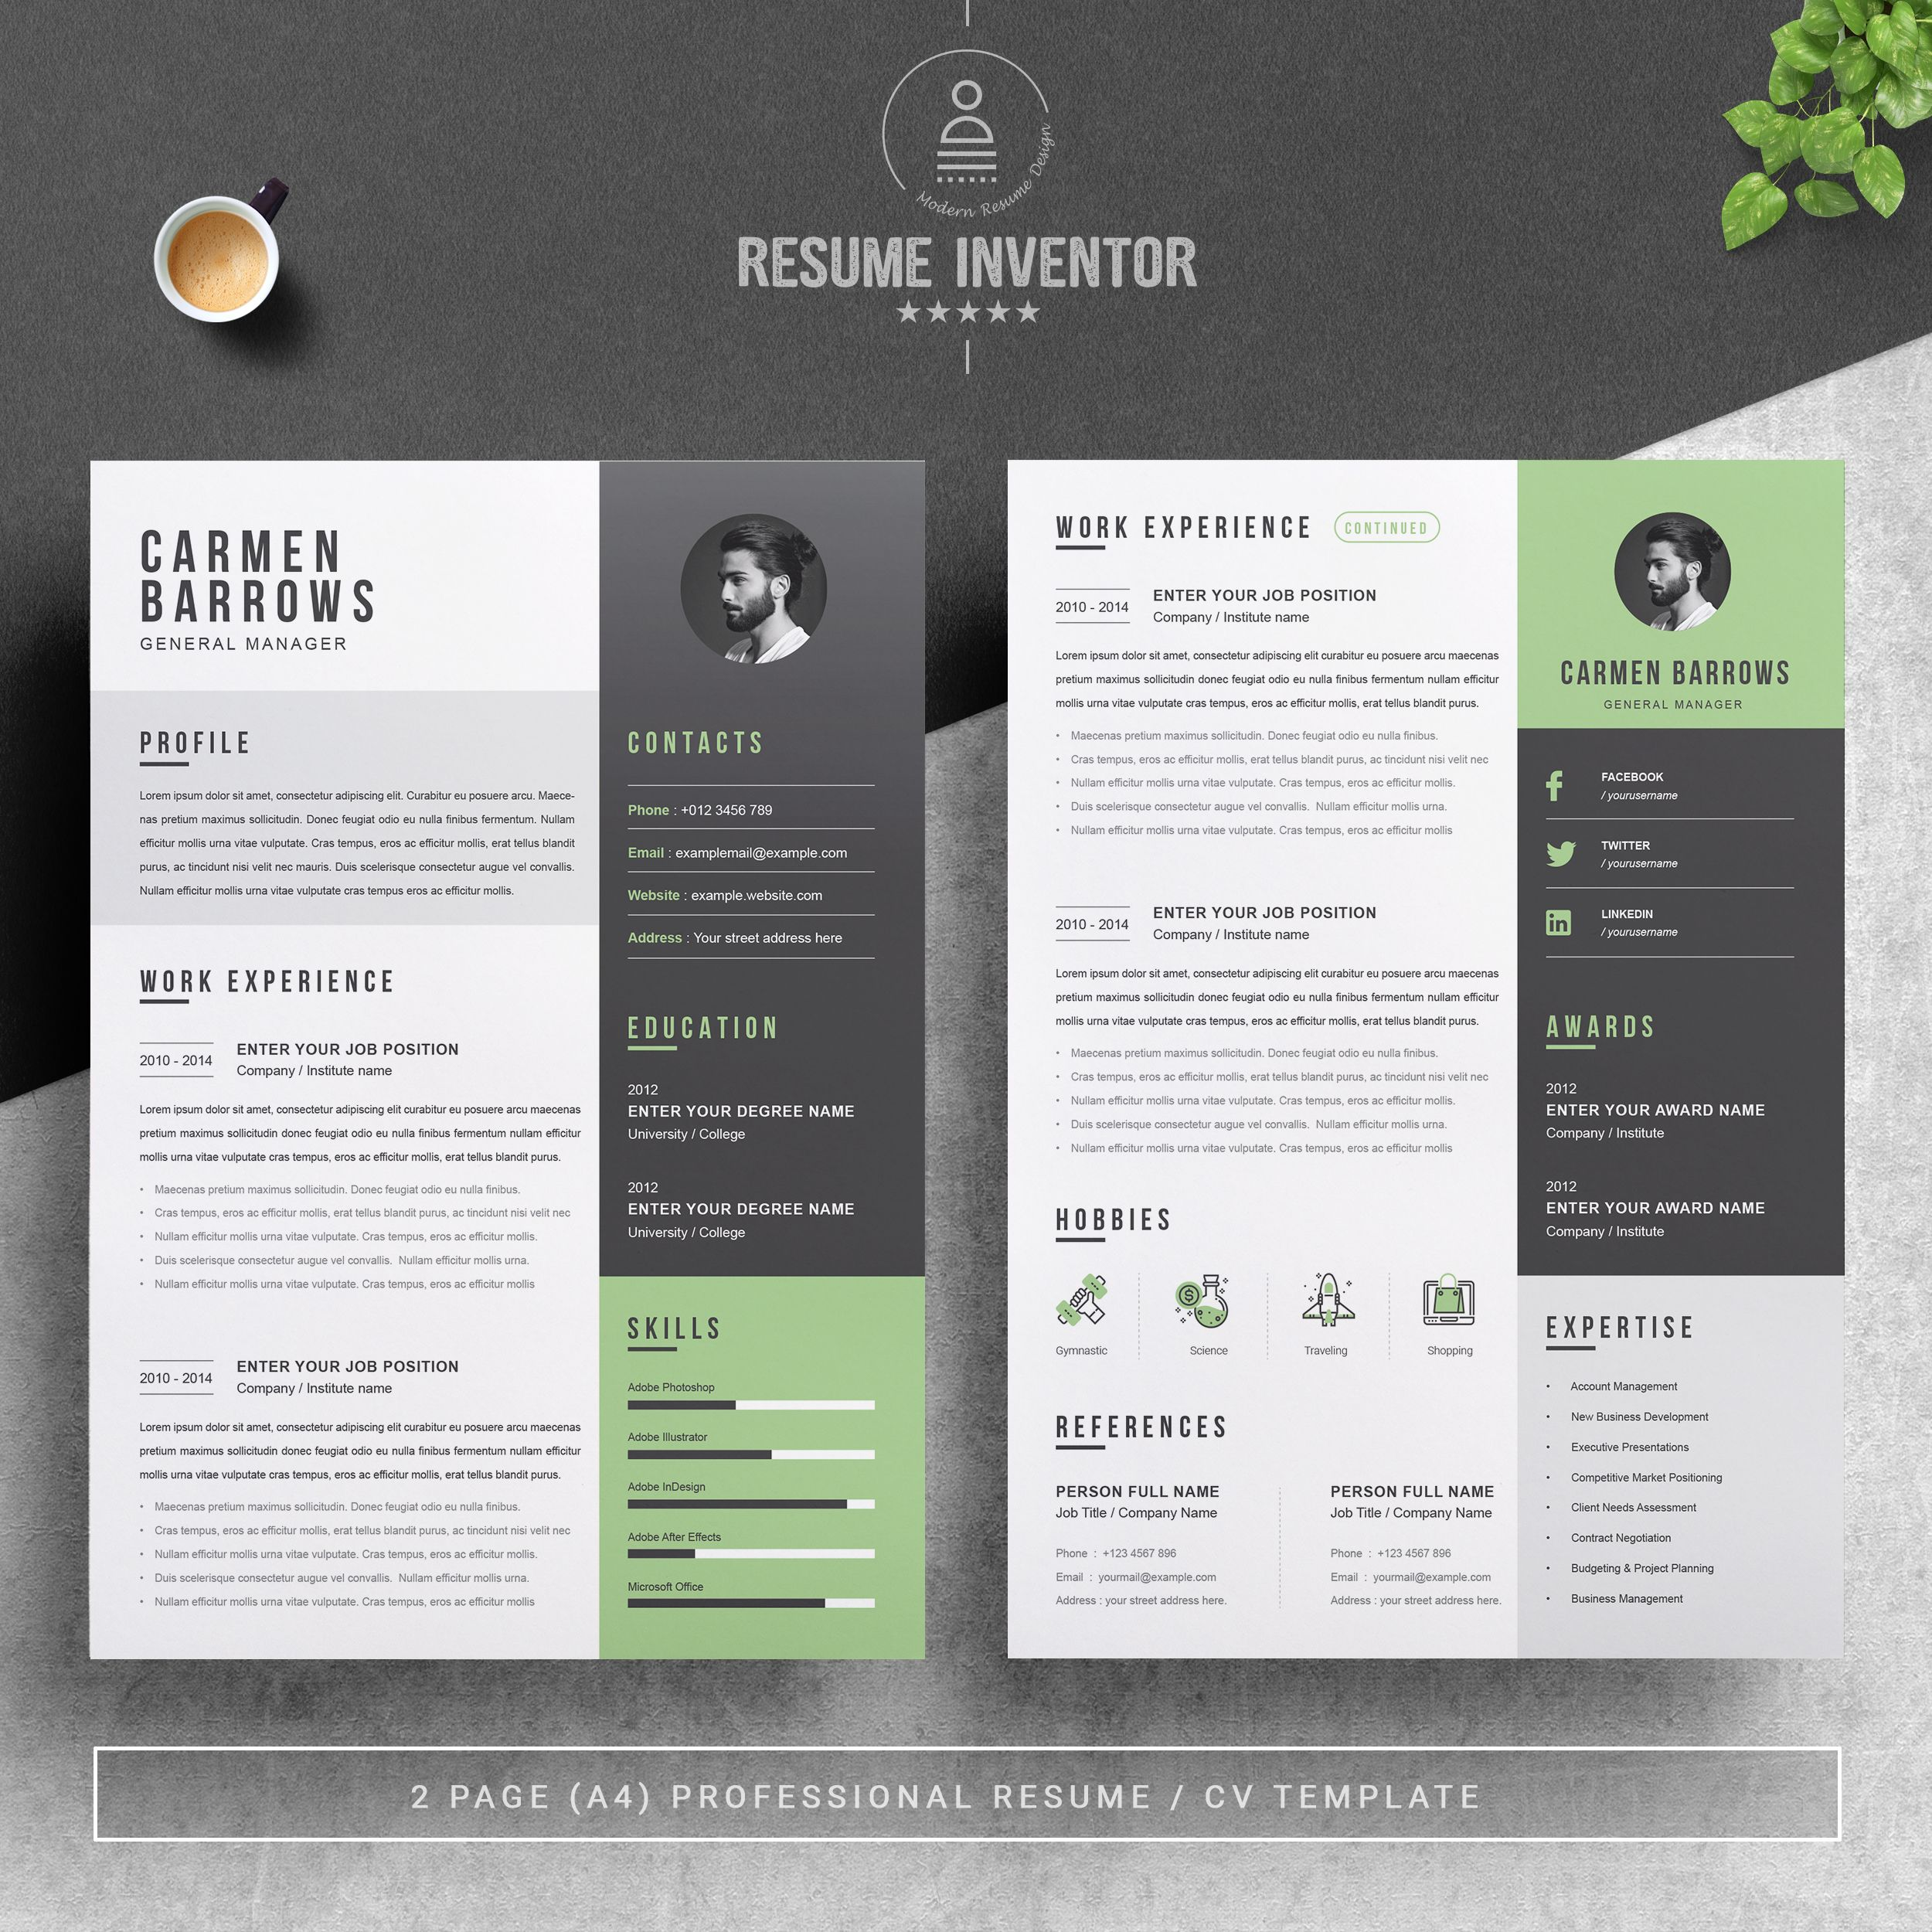 best free resume templates for architects arch2o interior design software developer Resume Free Interior Design Resume Templates